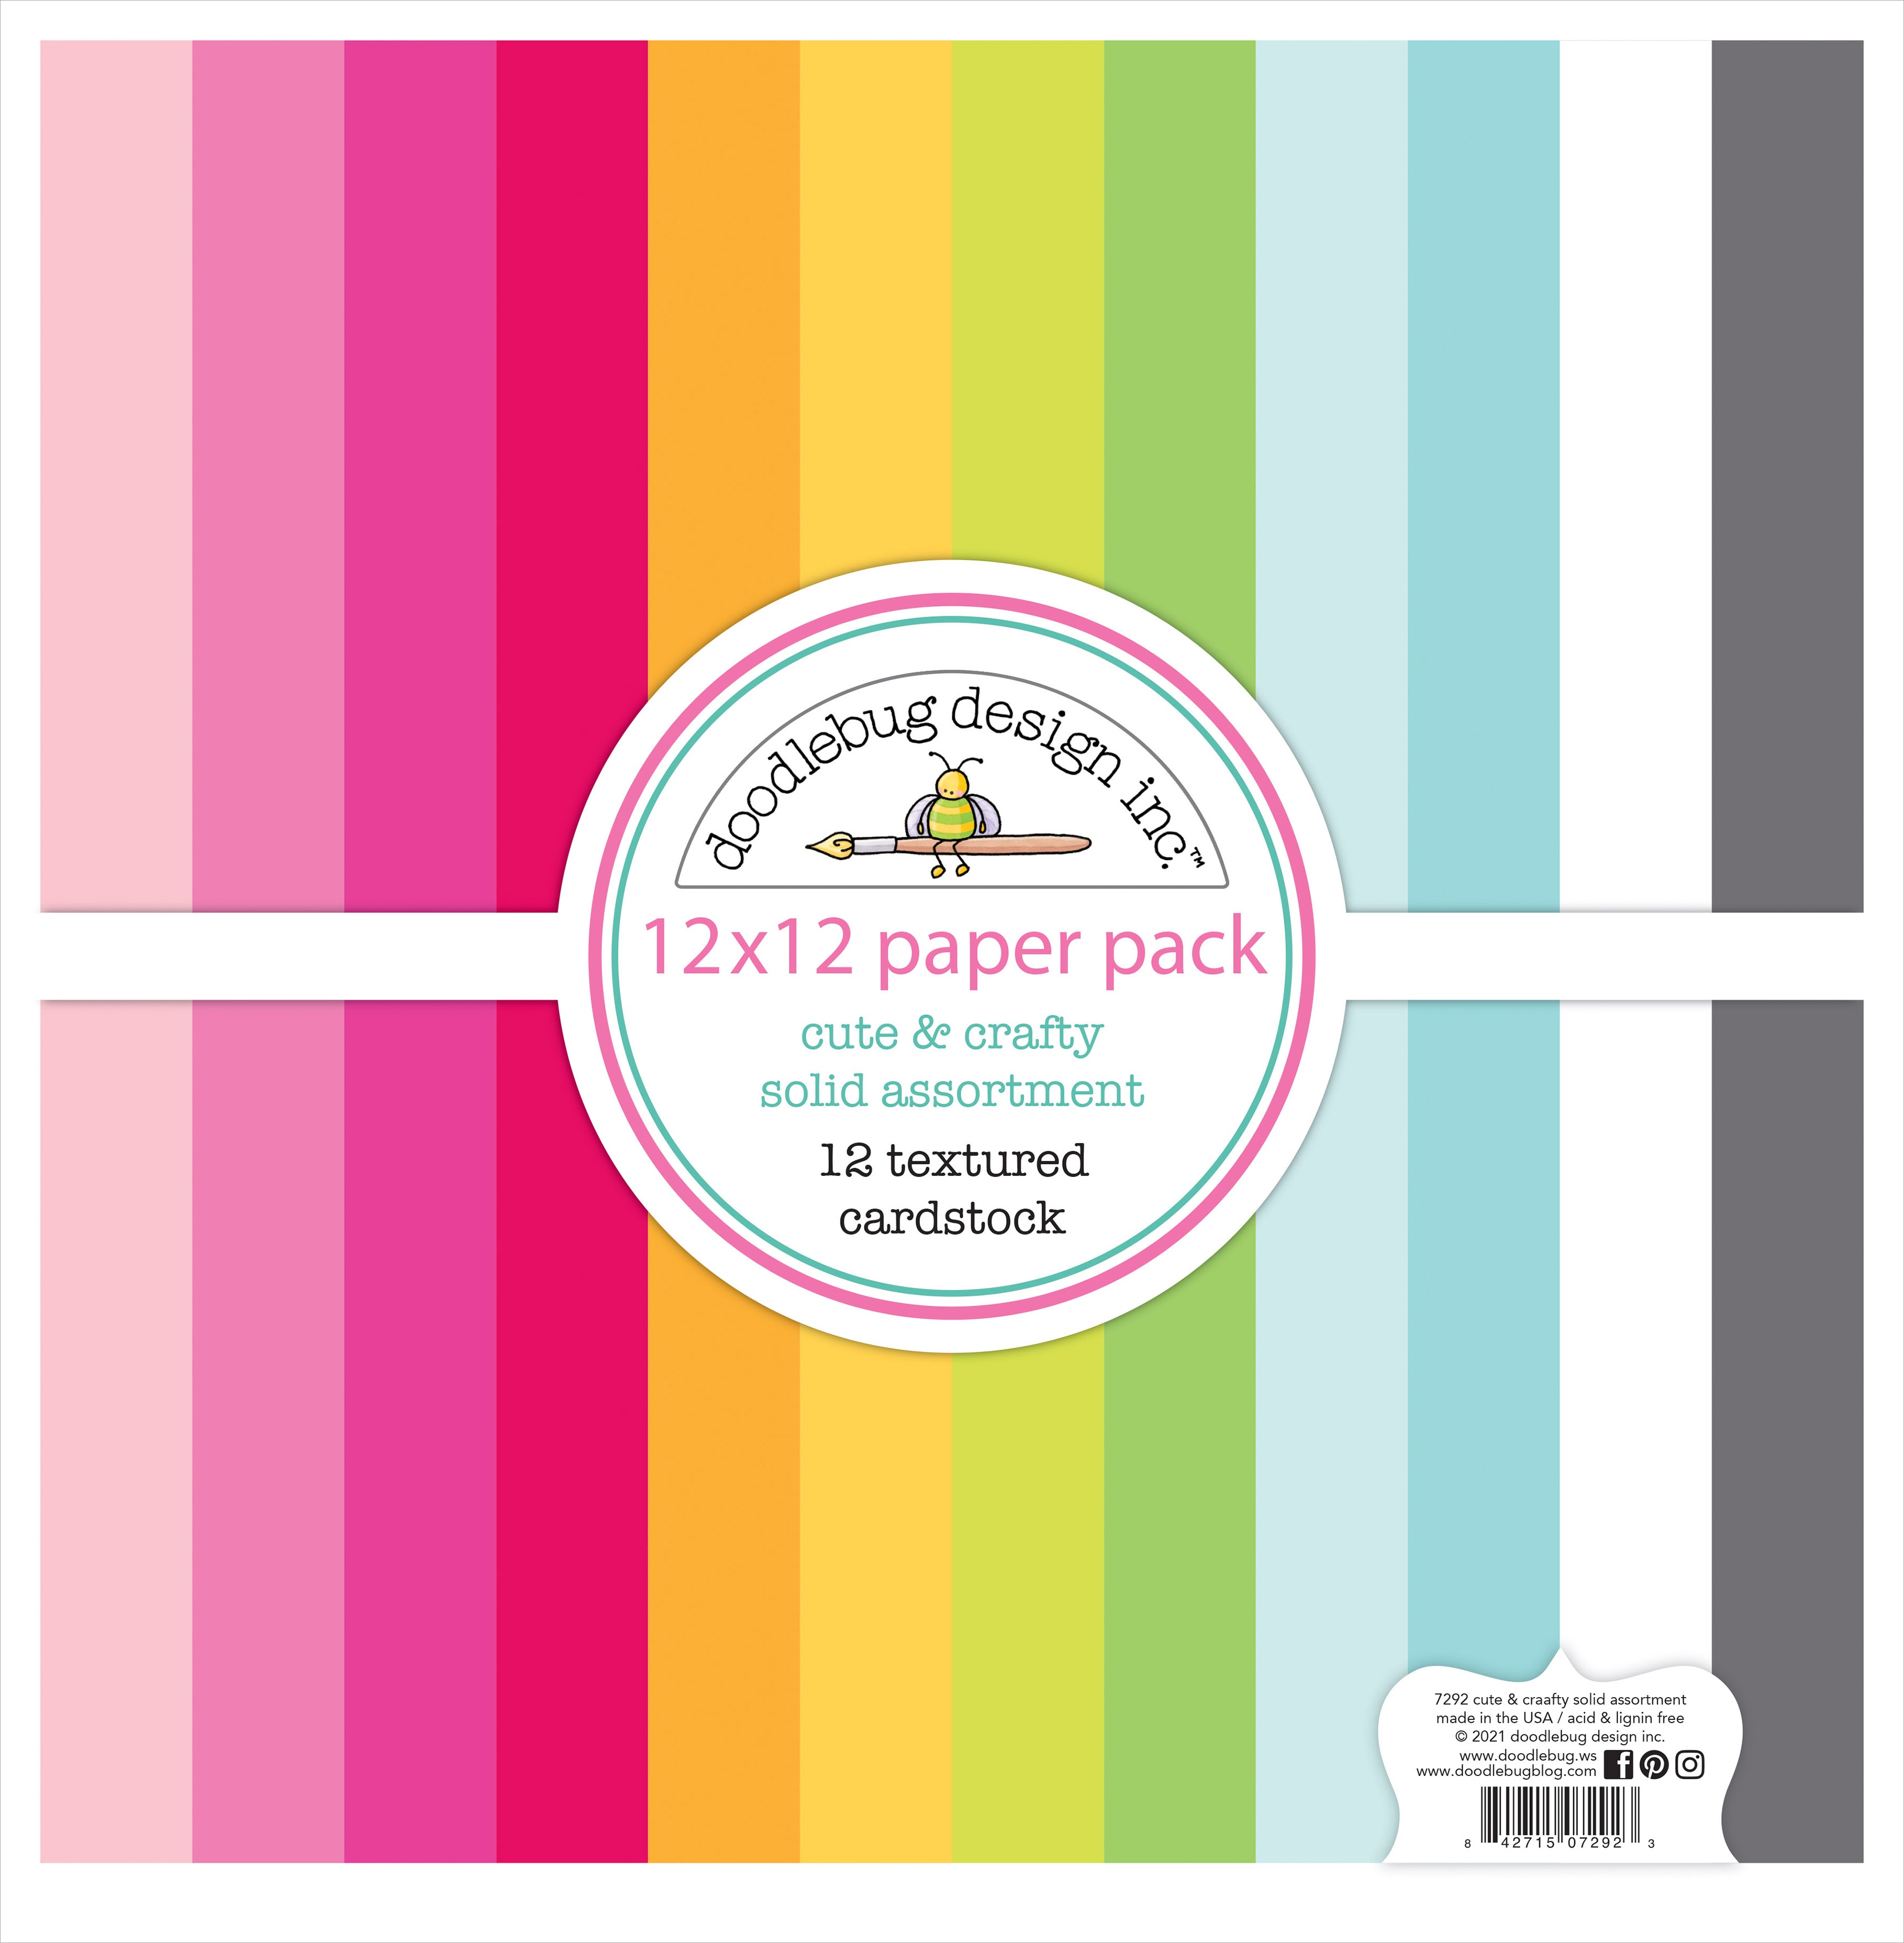 Doodlebug Textured Double-Sided Cardstock 12X12 Pack-Cute & Crafty